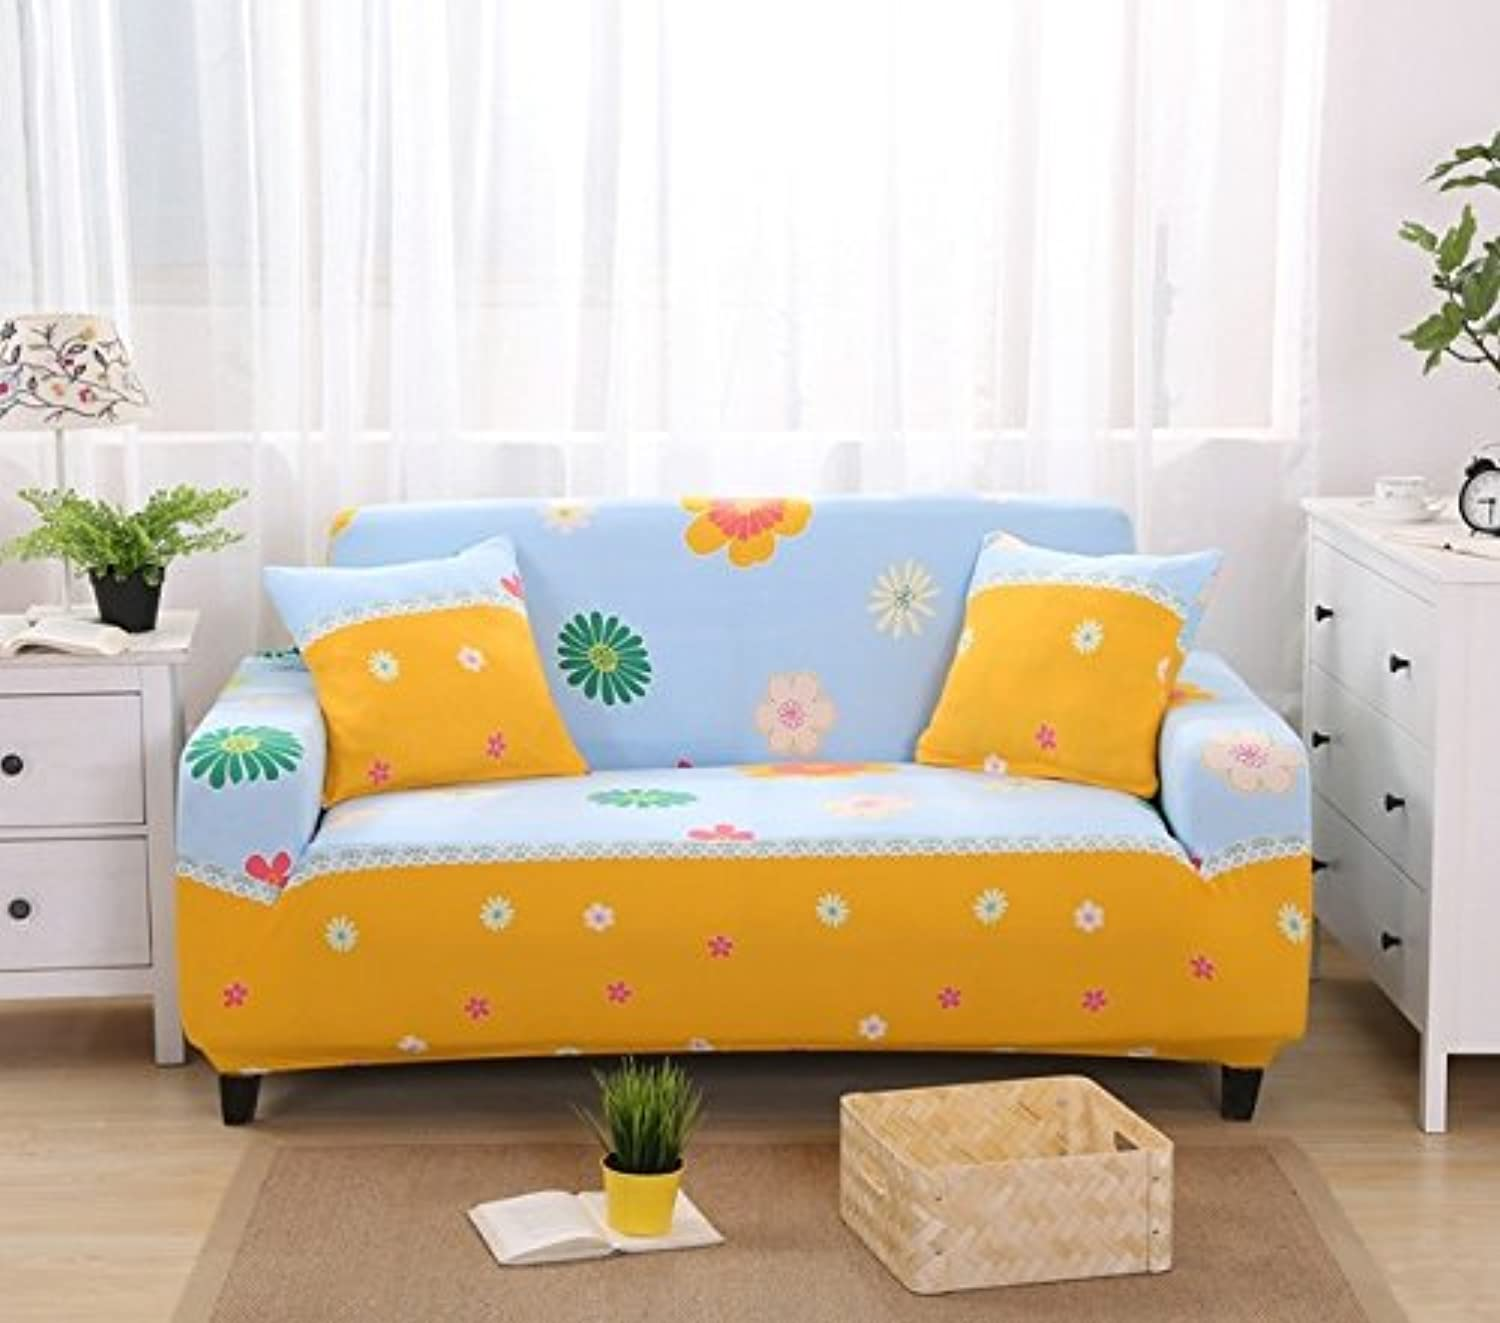 Farmerly Slipcovers Sofa Cover Tight wrap All-Inclusive Slip-Resistant sectional Elastic Full Sofa Cover Towel Single Two Three Four-seat   15, 1 Seater 90-140cm